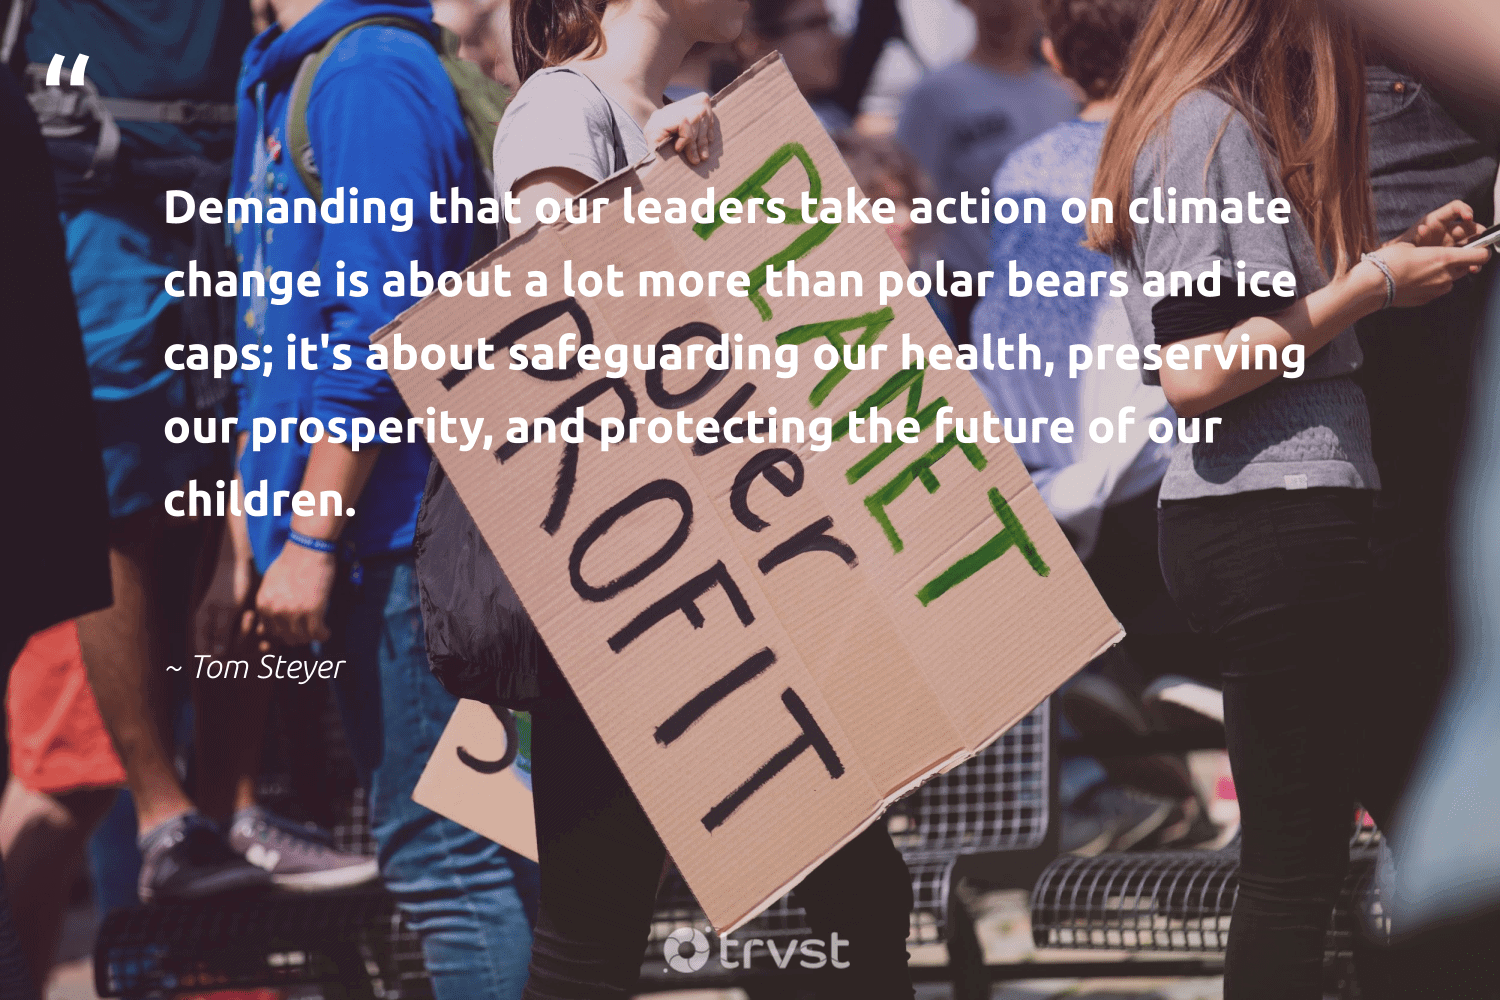 """""""Demanding that our leaders take action on climate change is about a lot more than polar bears and ice caps; it's about safeguarding our health, preserving our prosperity, and protecting the future of our children.""""  - Tom Steyer #trvst #quotes #climatechange #takeaction #climate #children #health #co2 #globalwarming #climatechangeisreal #actonclimate #beinspired"""